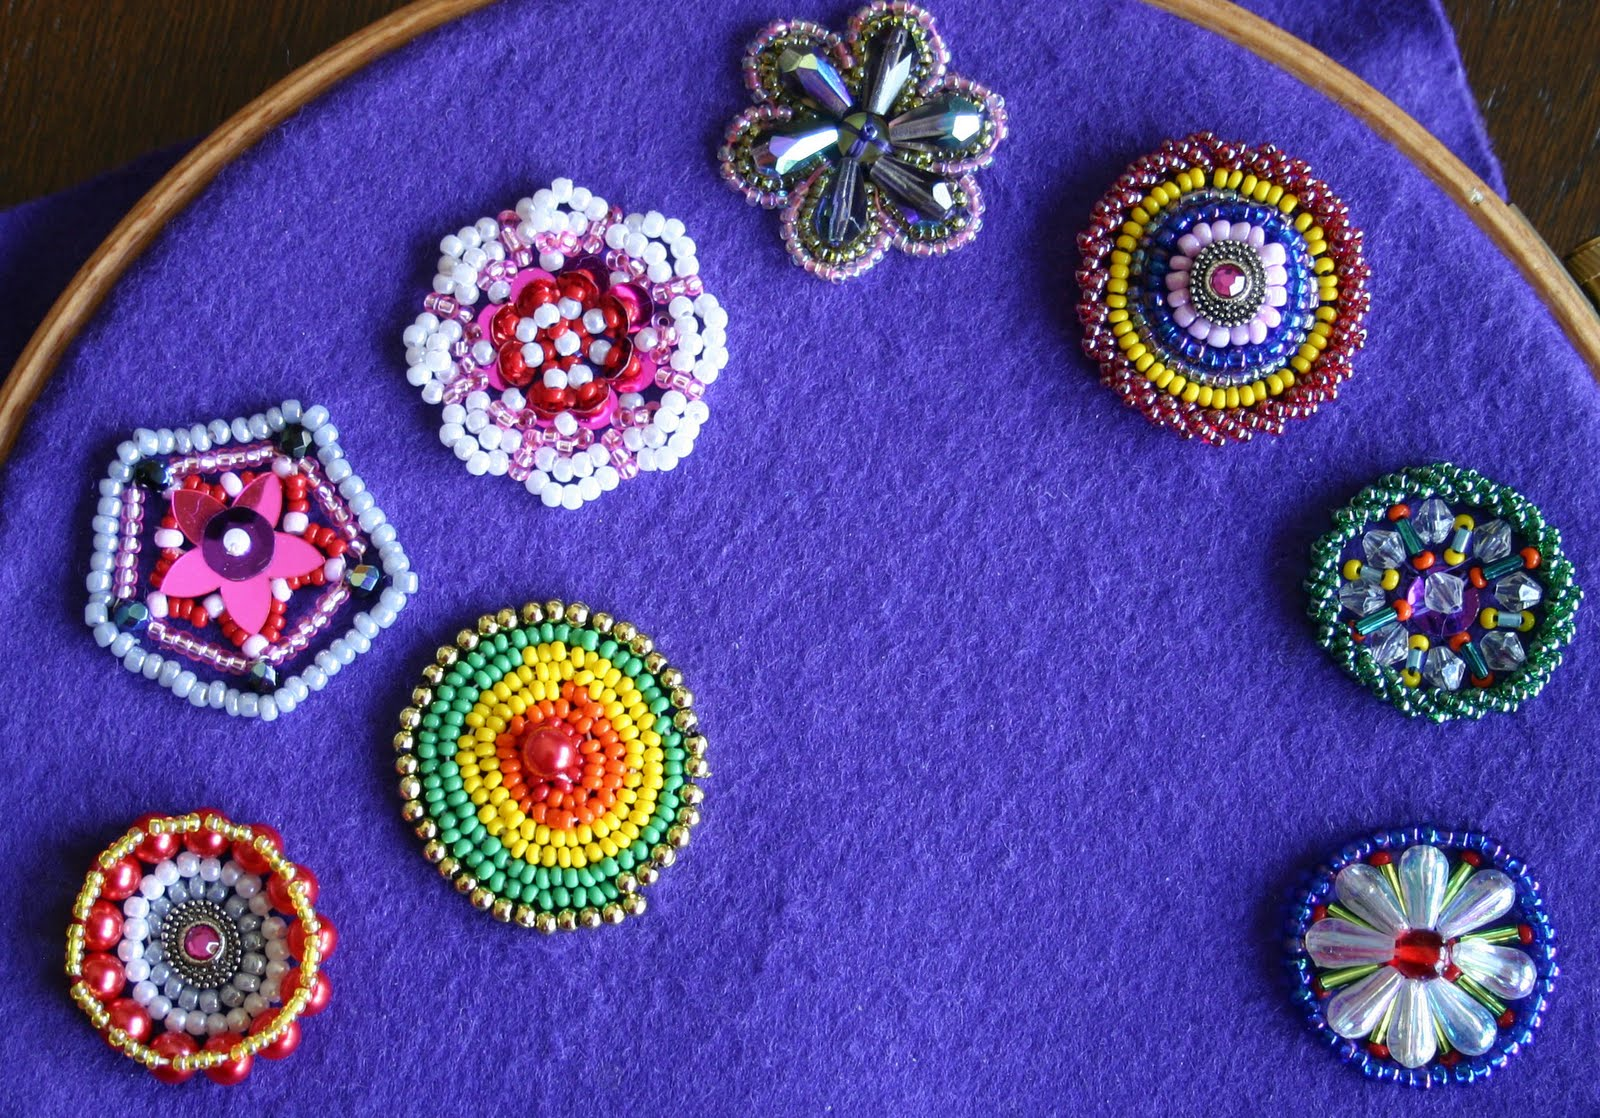 Knityoga bead embroidery and art quilt